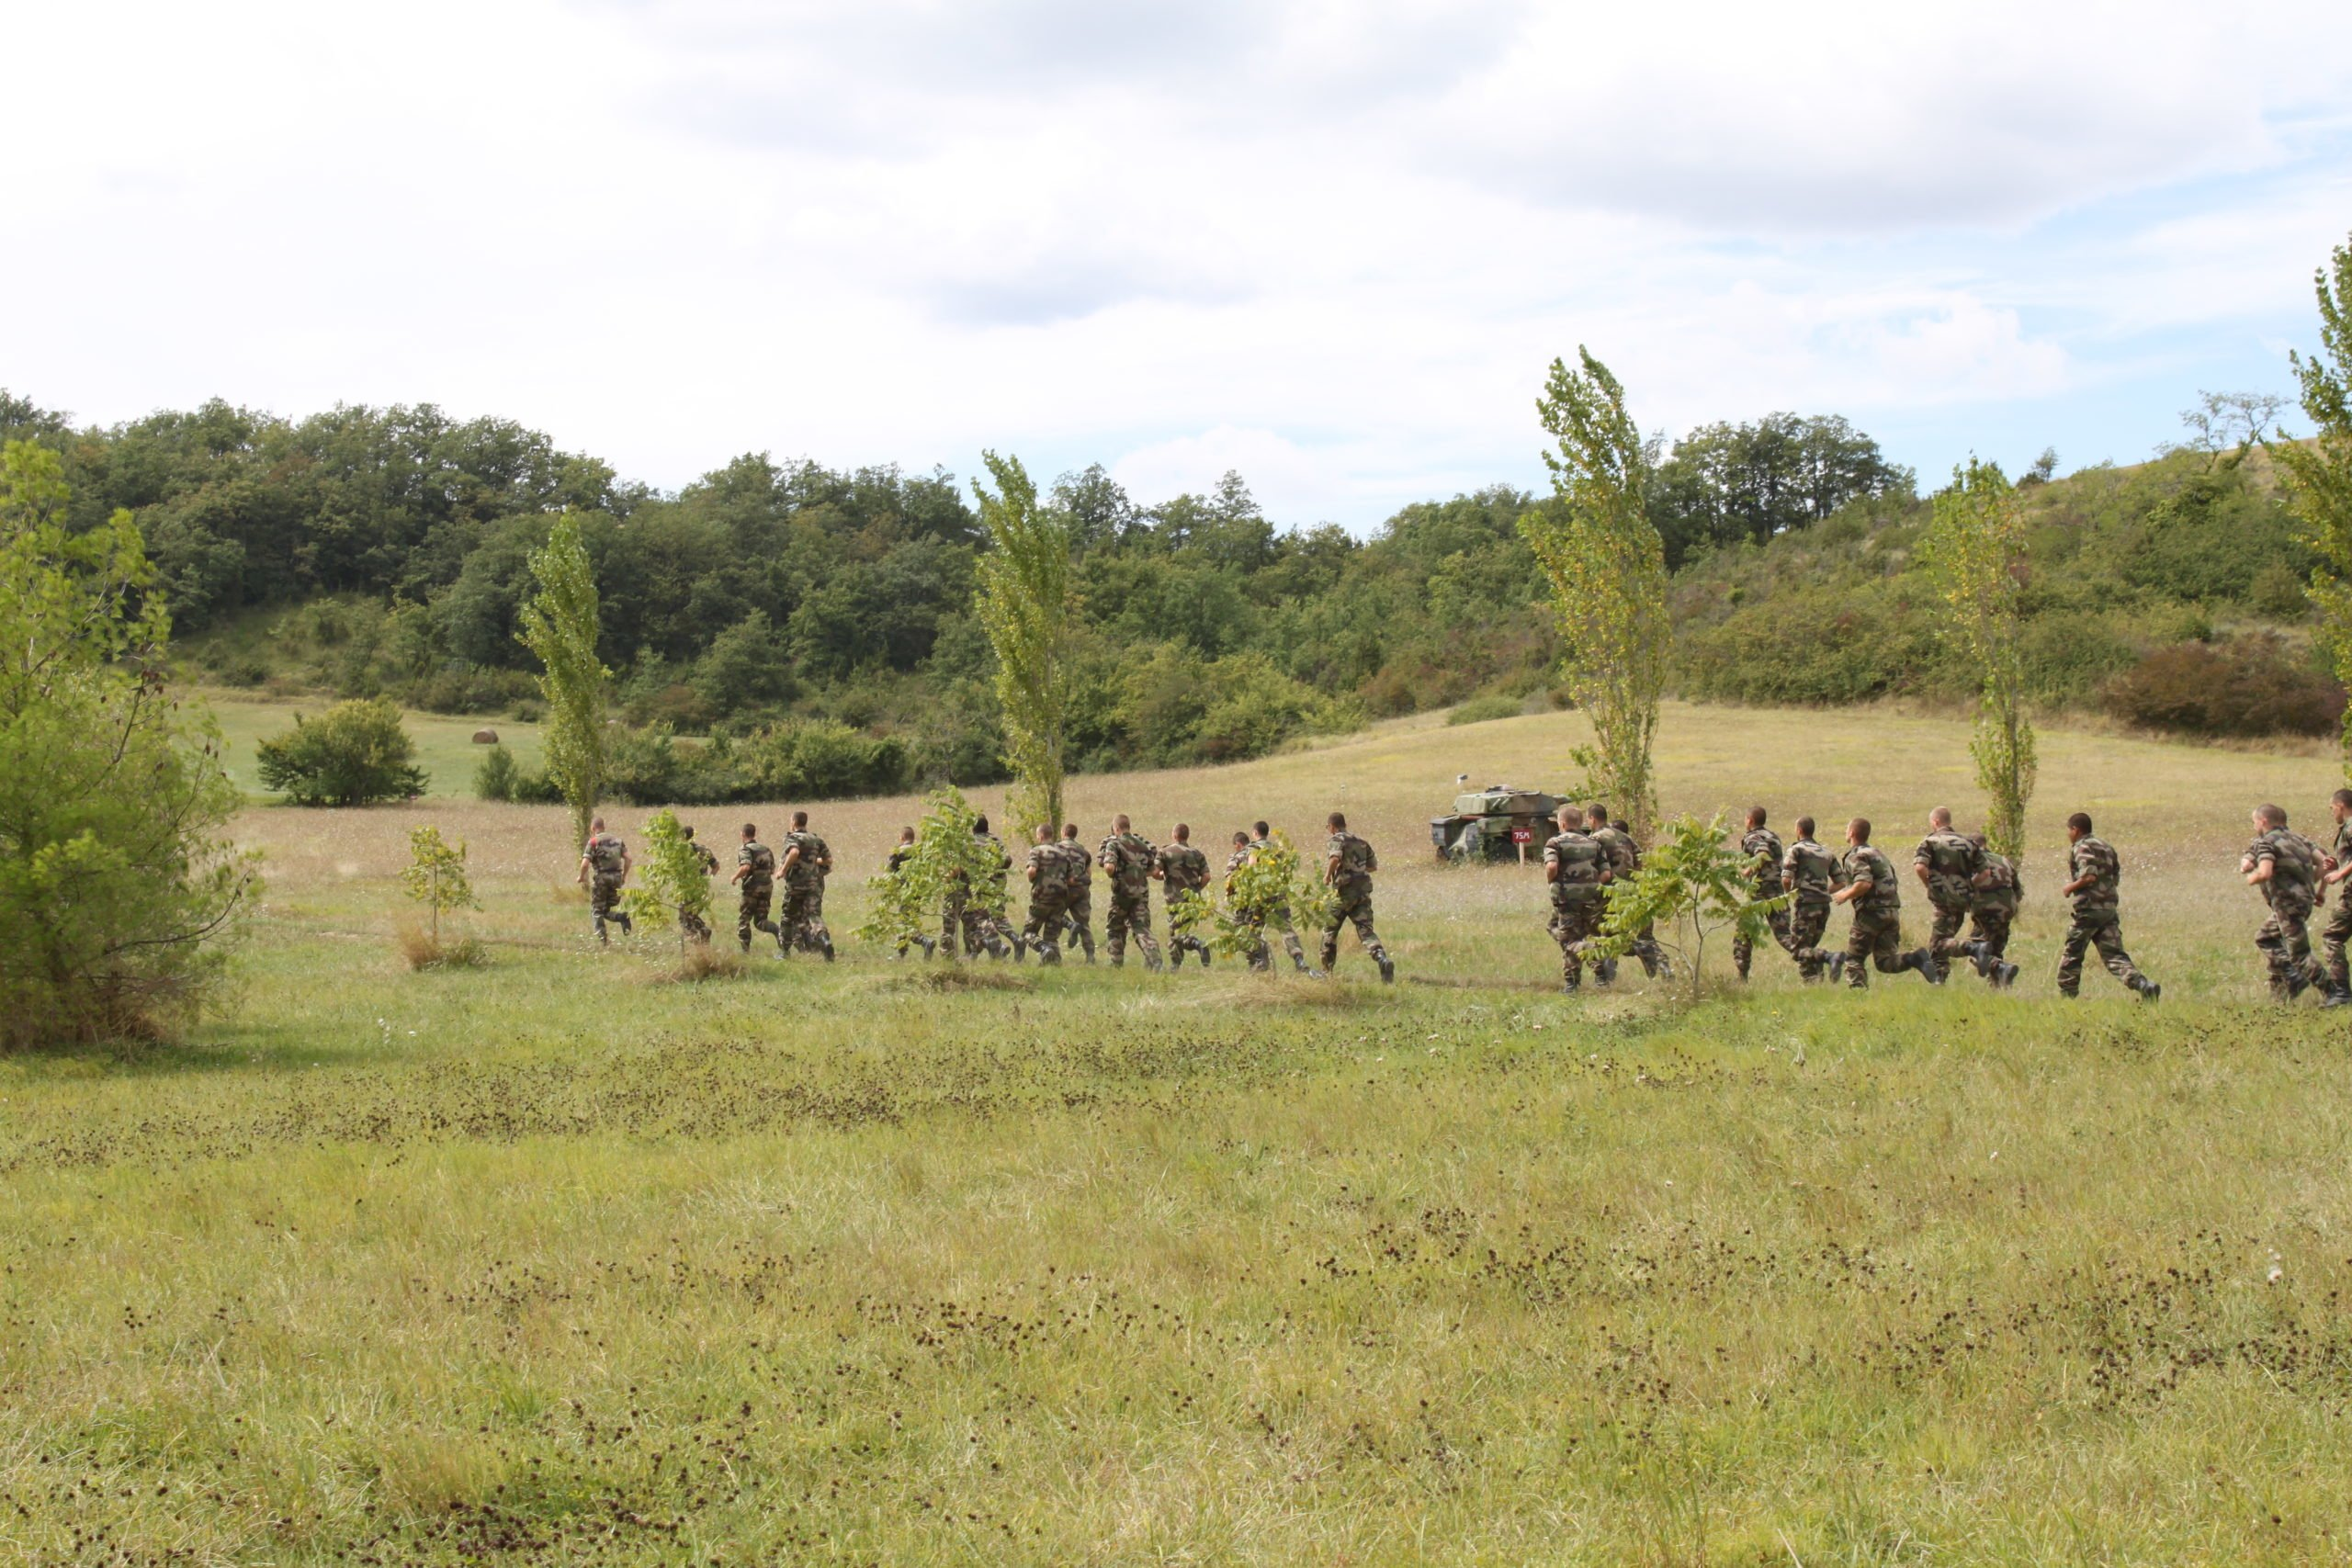 Legionnaires marching as part of basic training